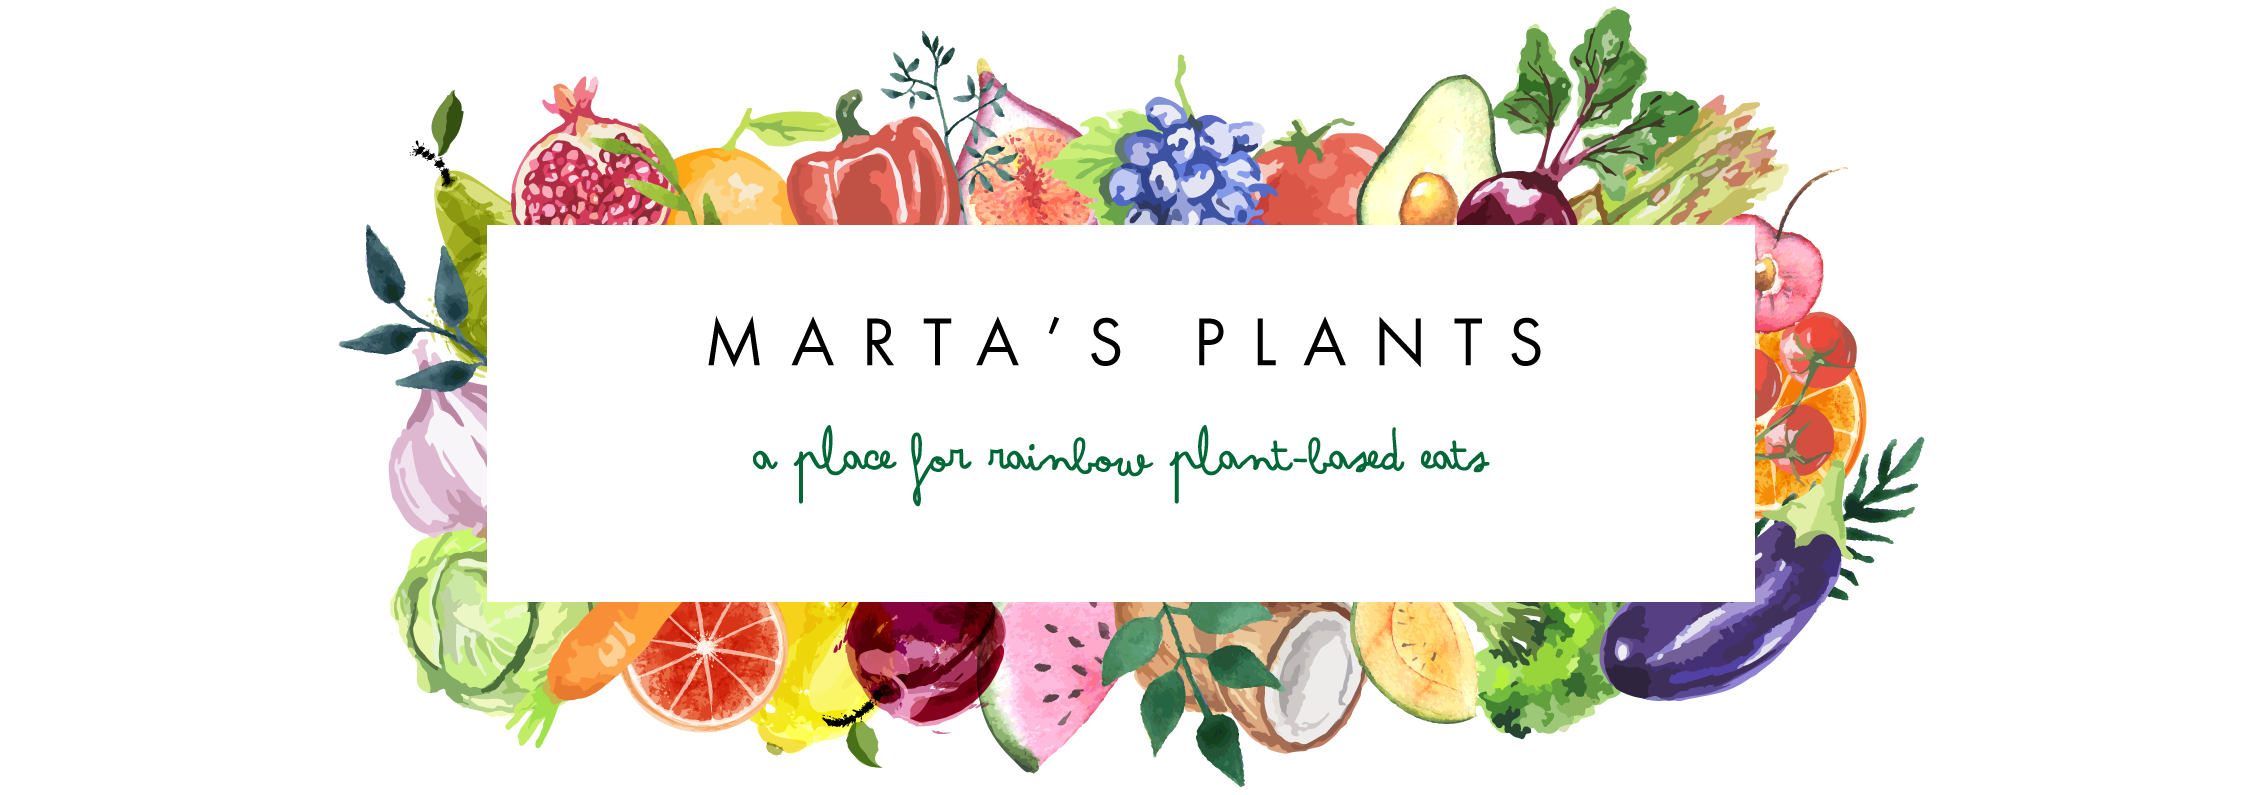 Marta's Plants